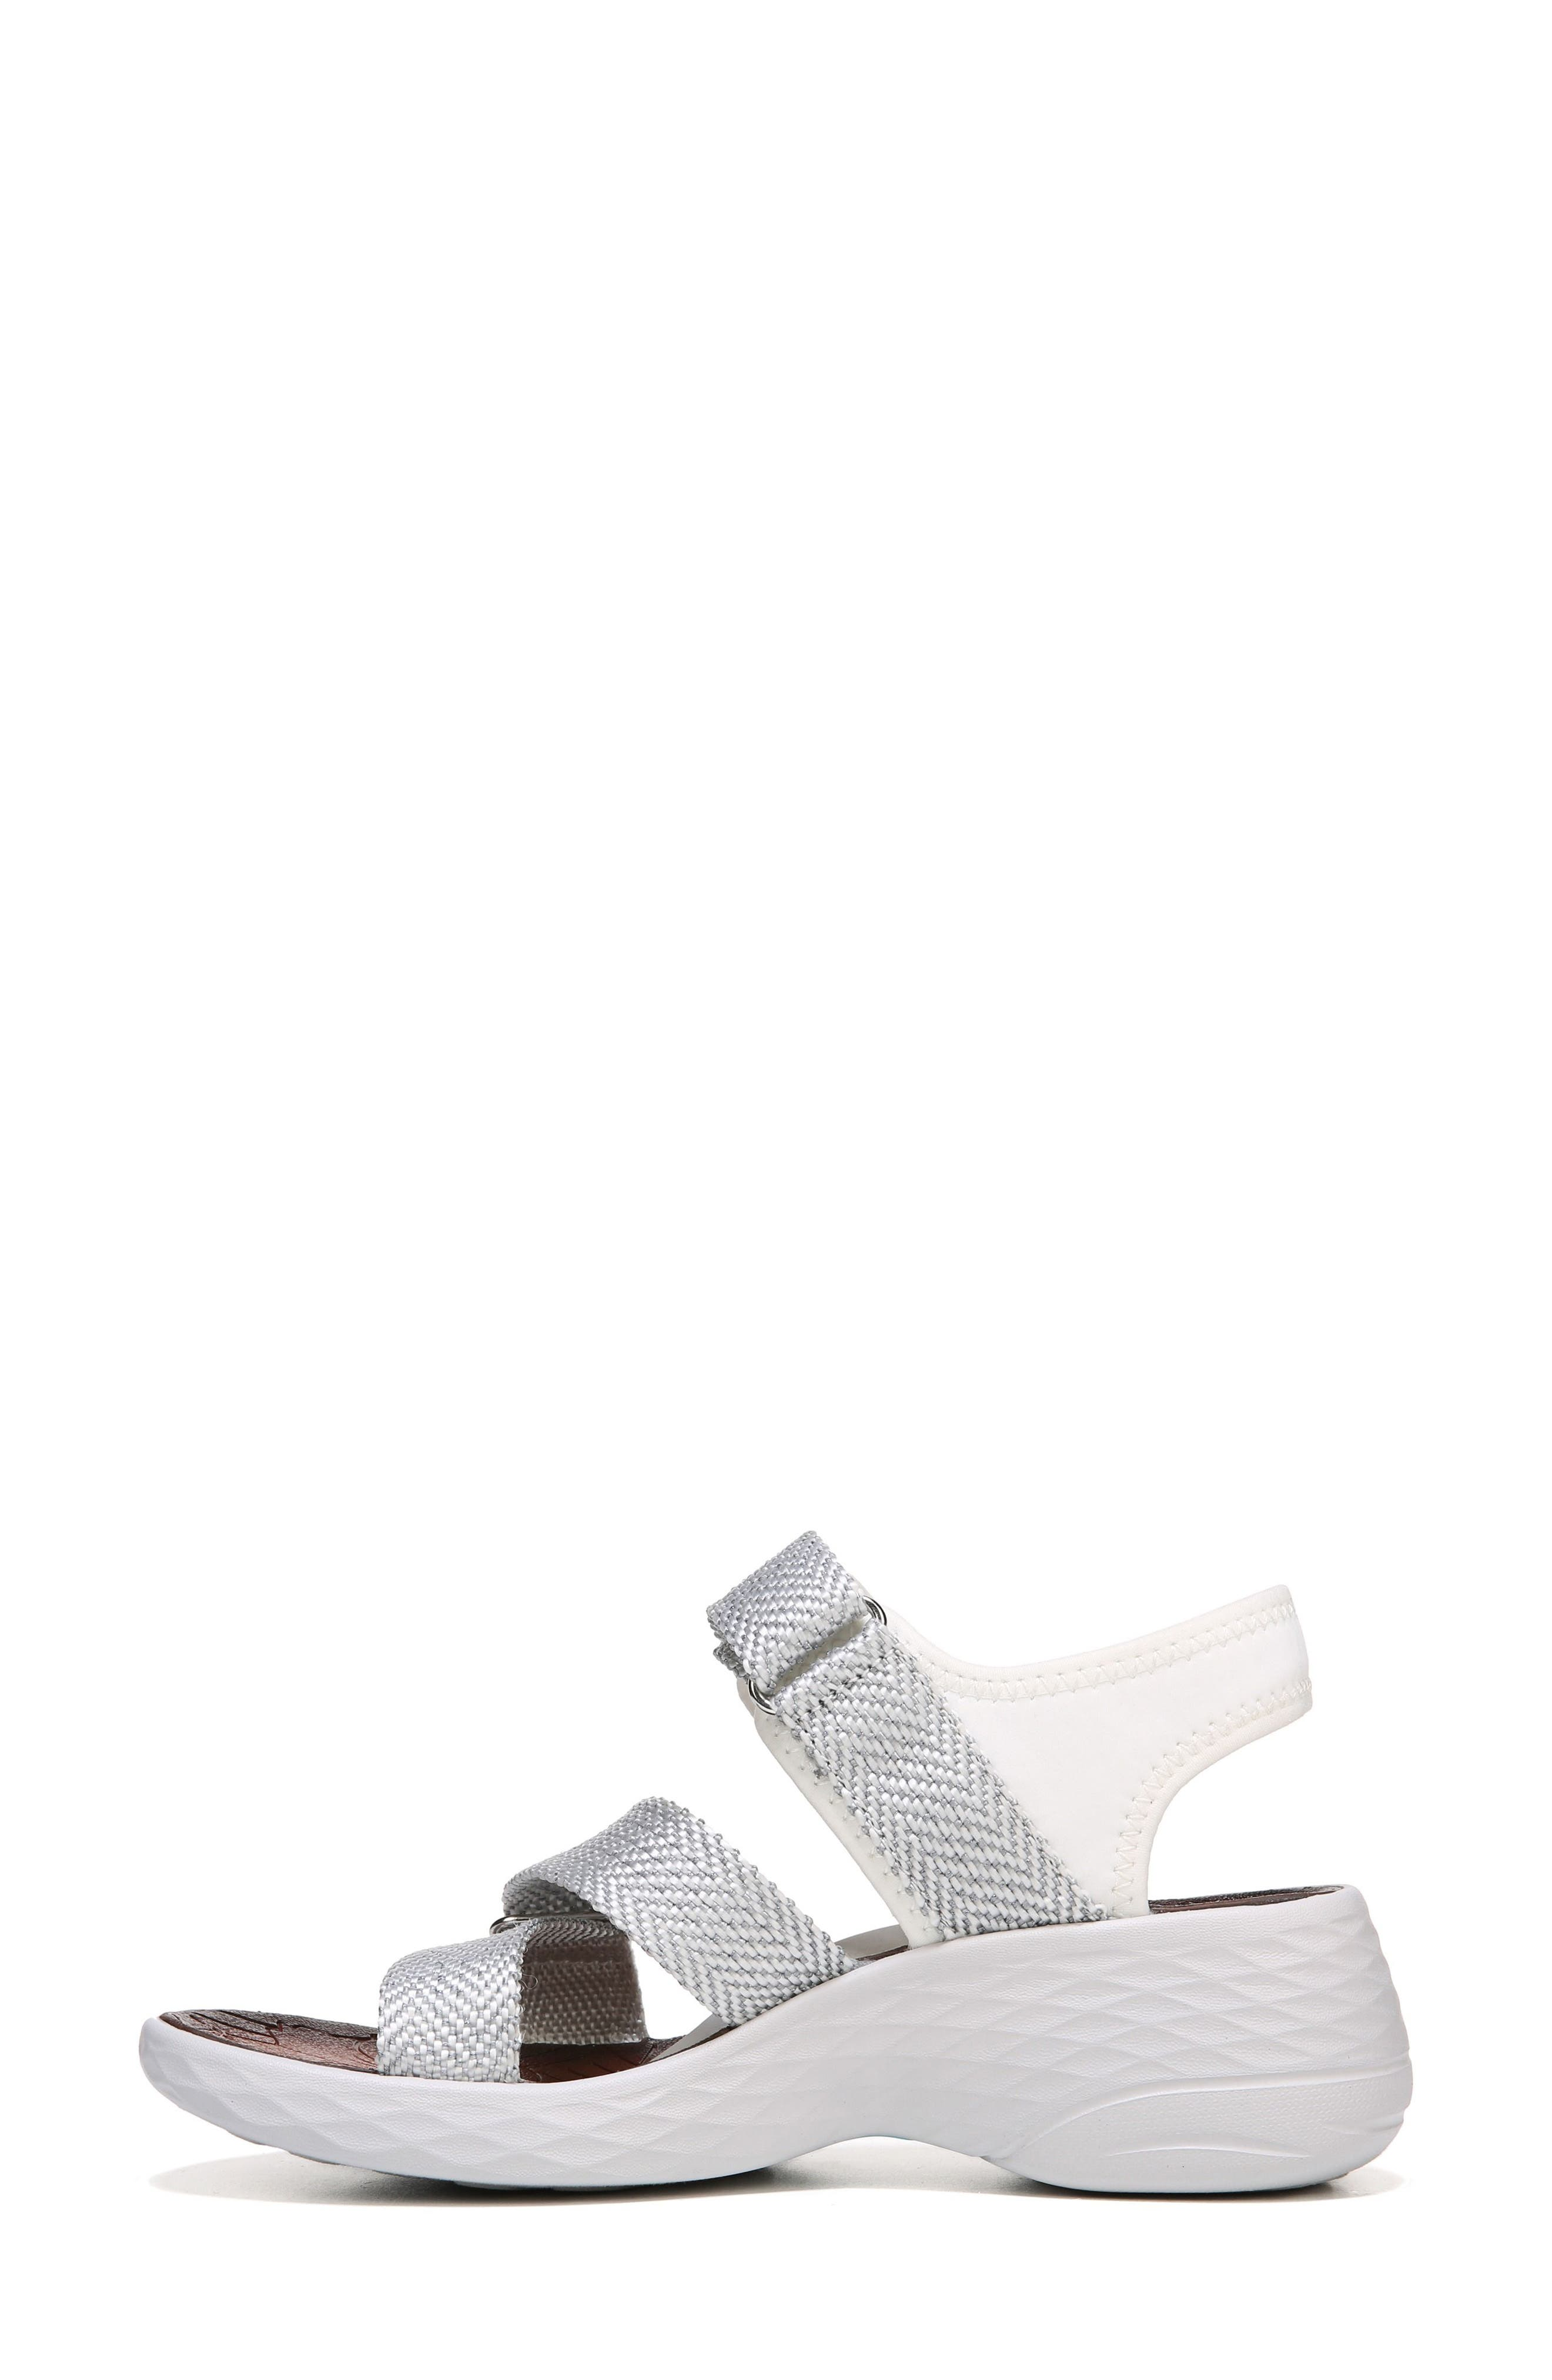 Jive Sandal,                             Alternate thumbnail 3, color,                             White Fabric